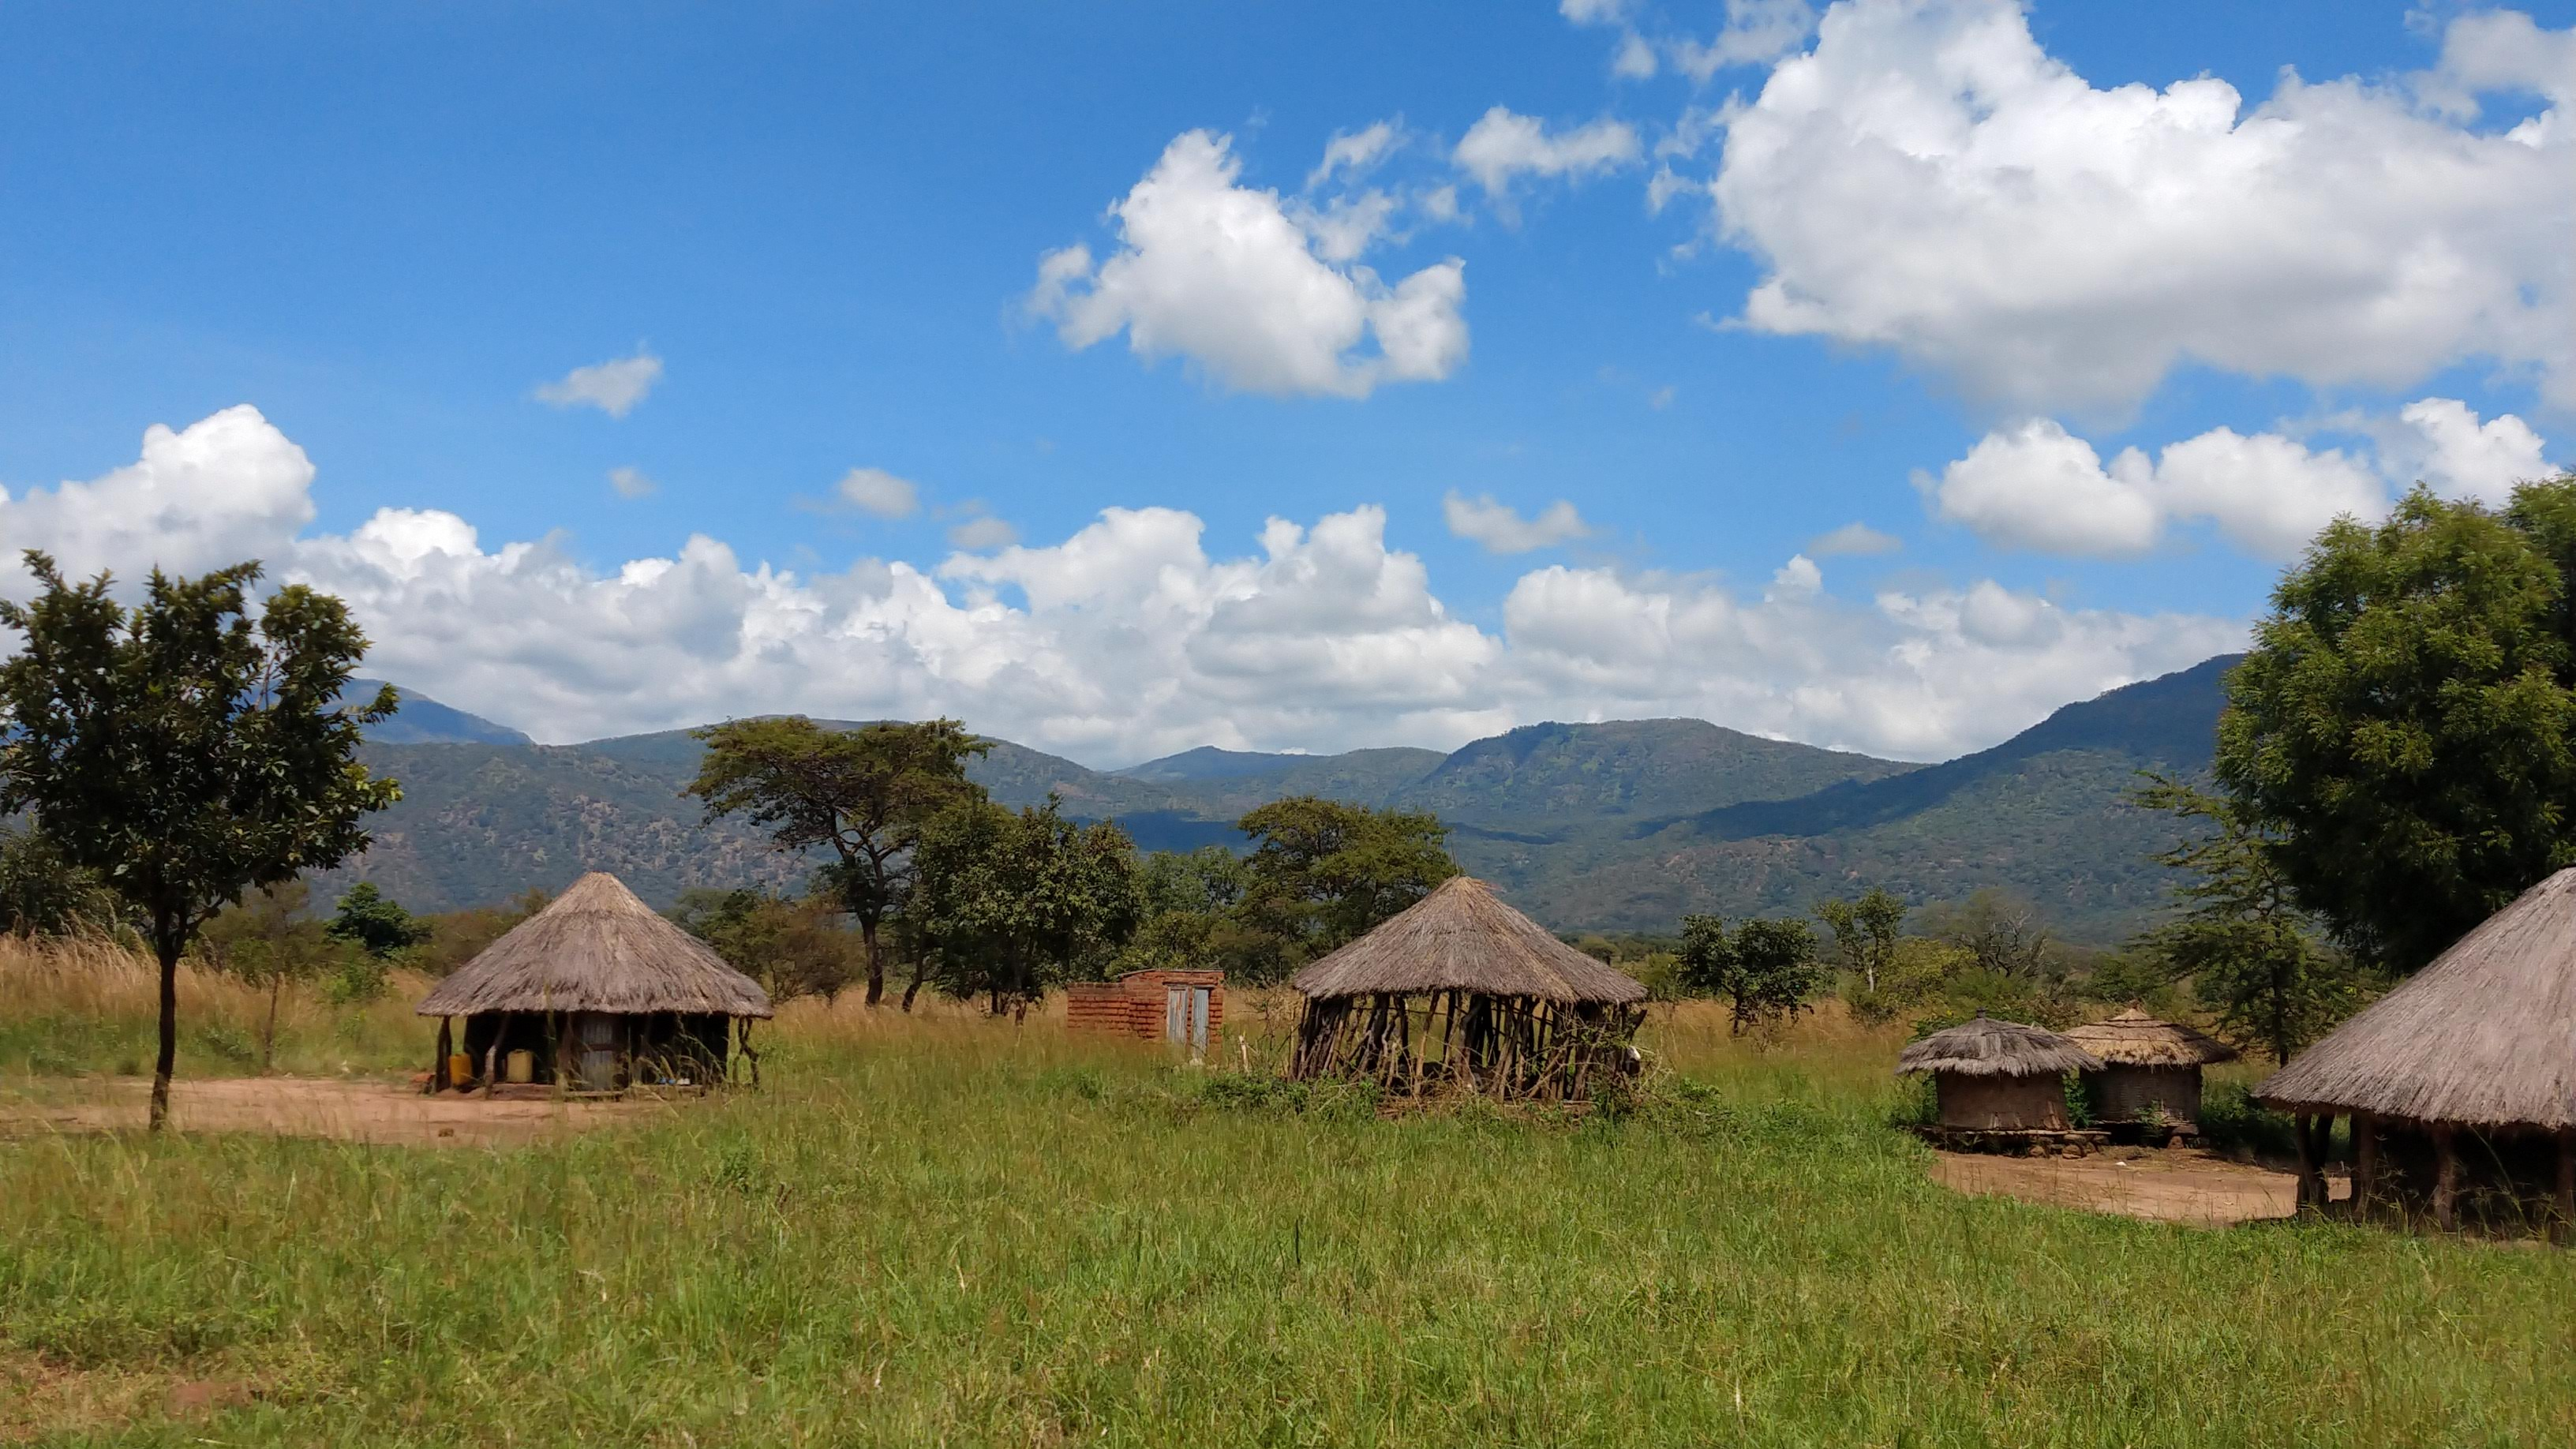 Landscape of North Uganda, huts, hills, green